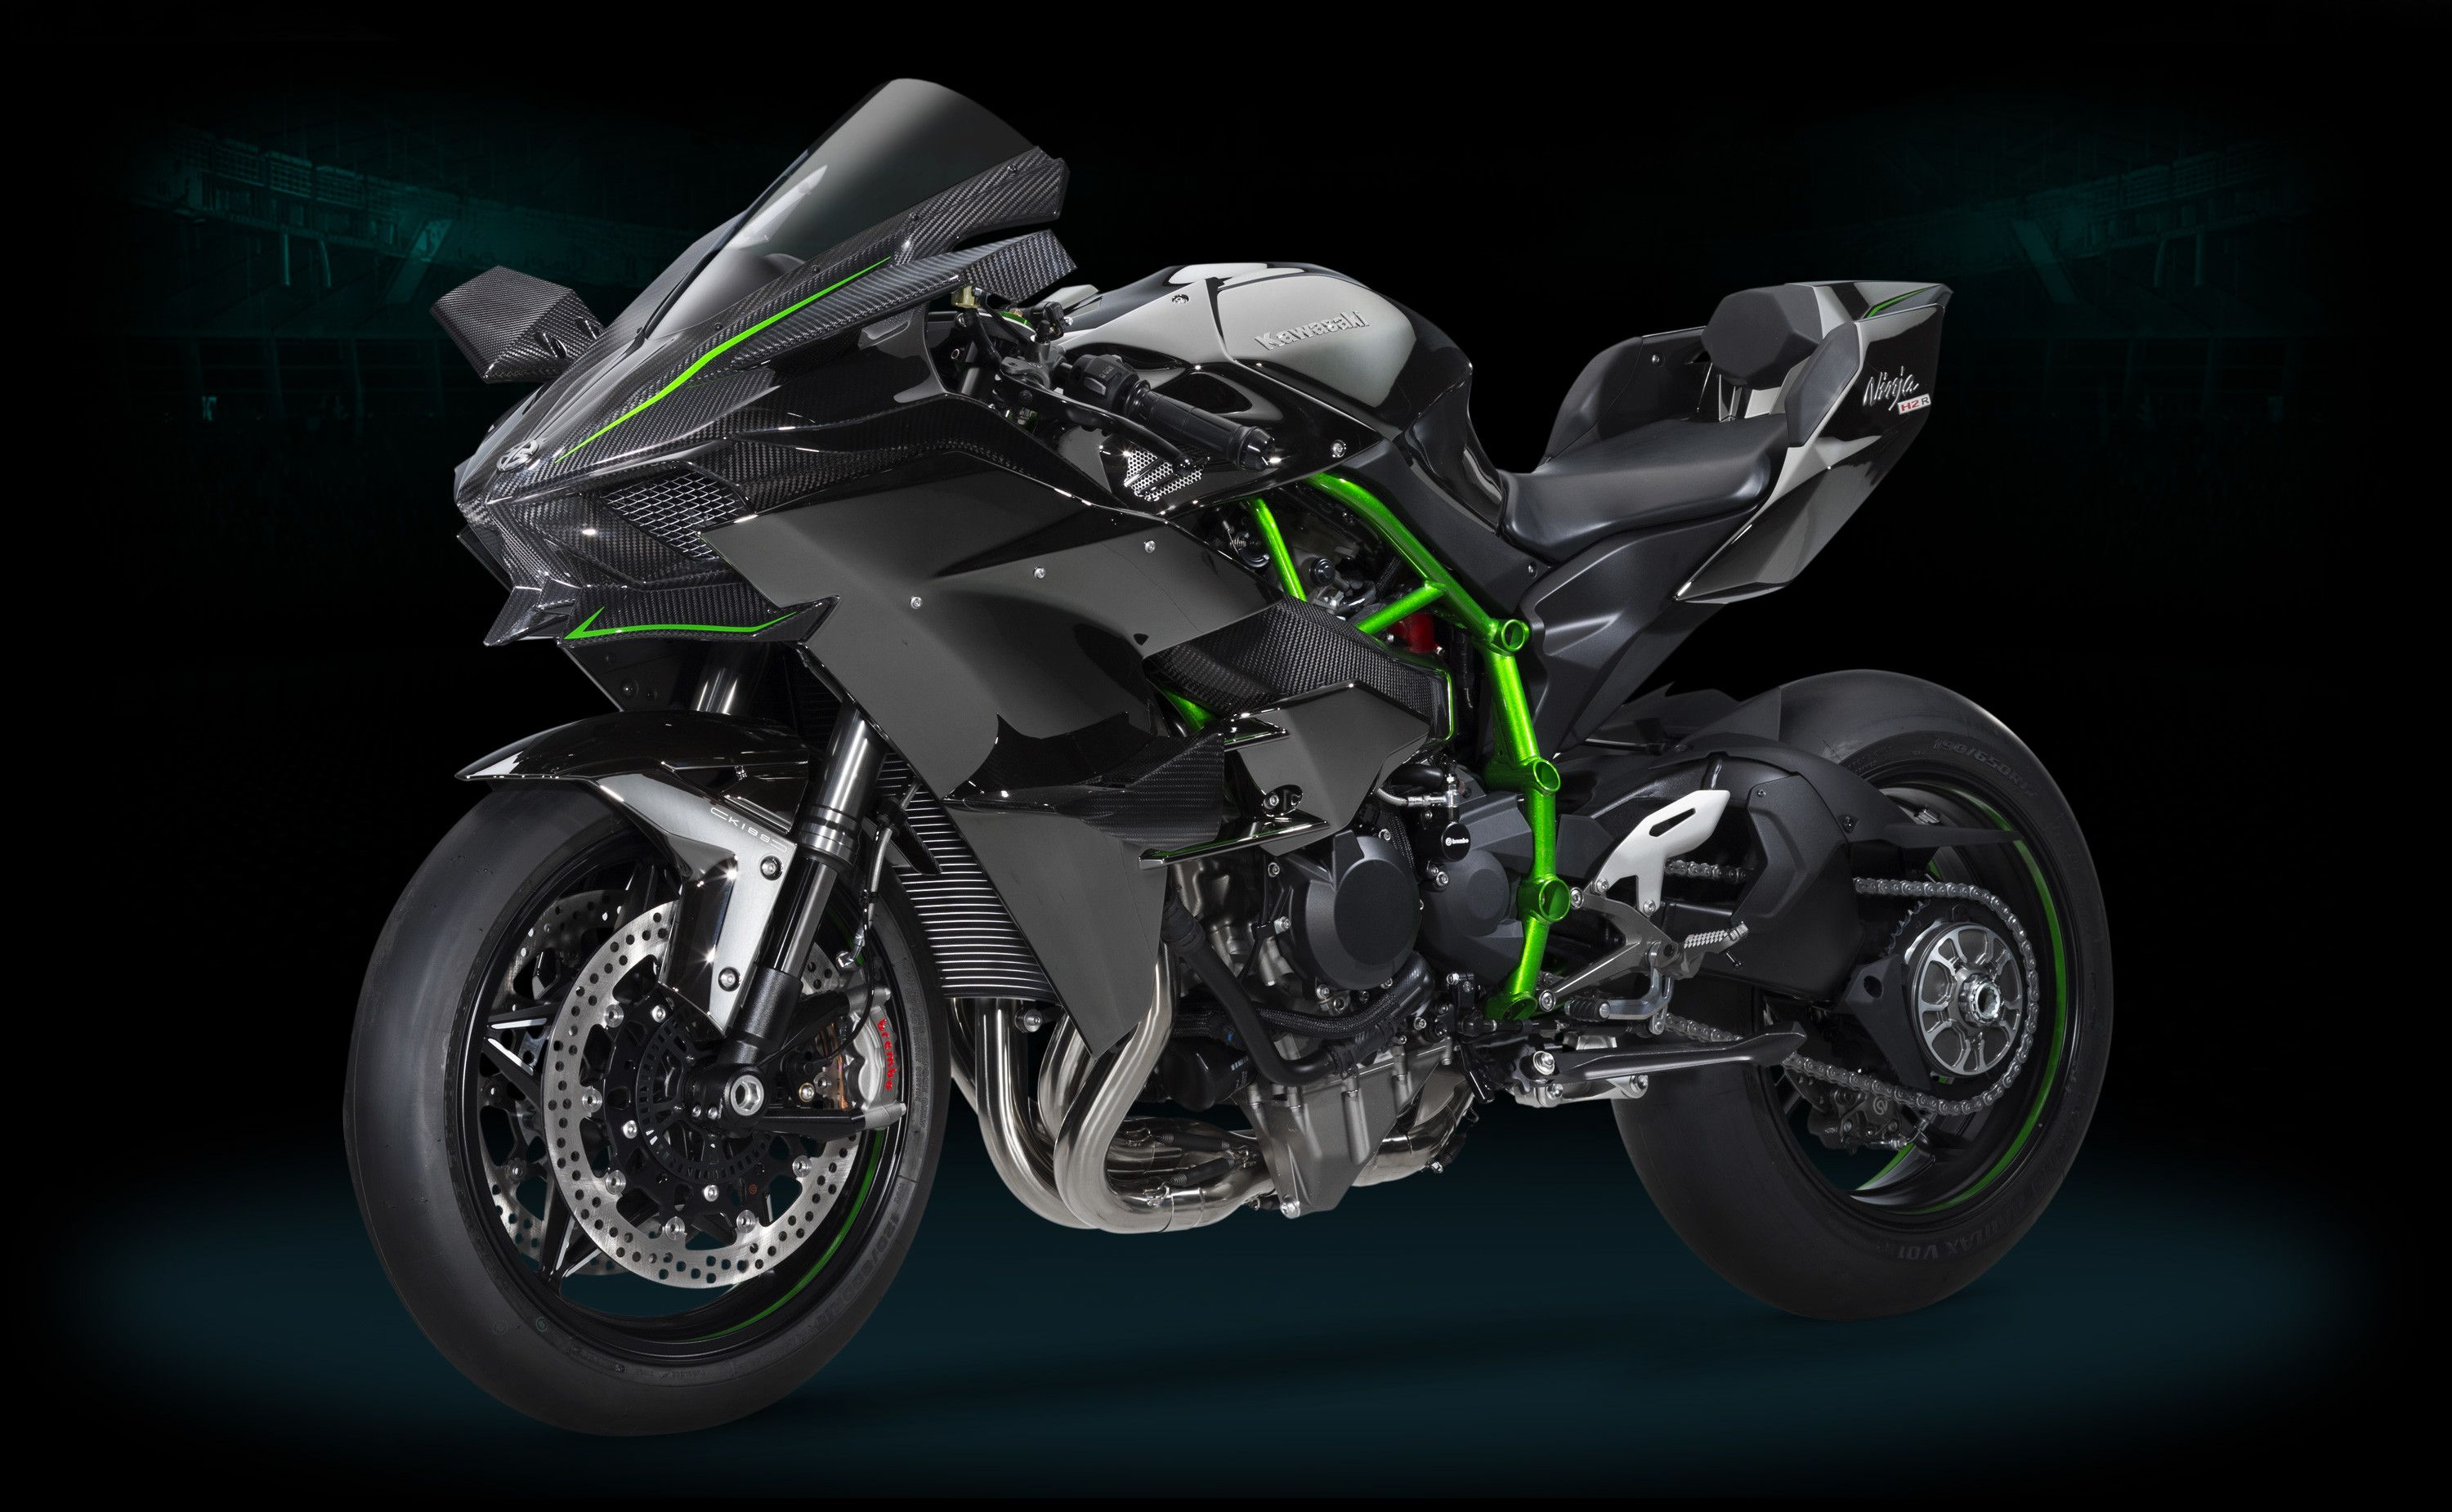 Kawasaki H2 Wallpapers Top Free Kawasaki H2 Backgrounds Wallpaperaccess